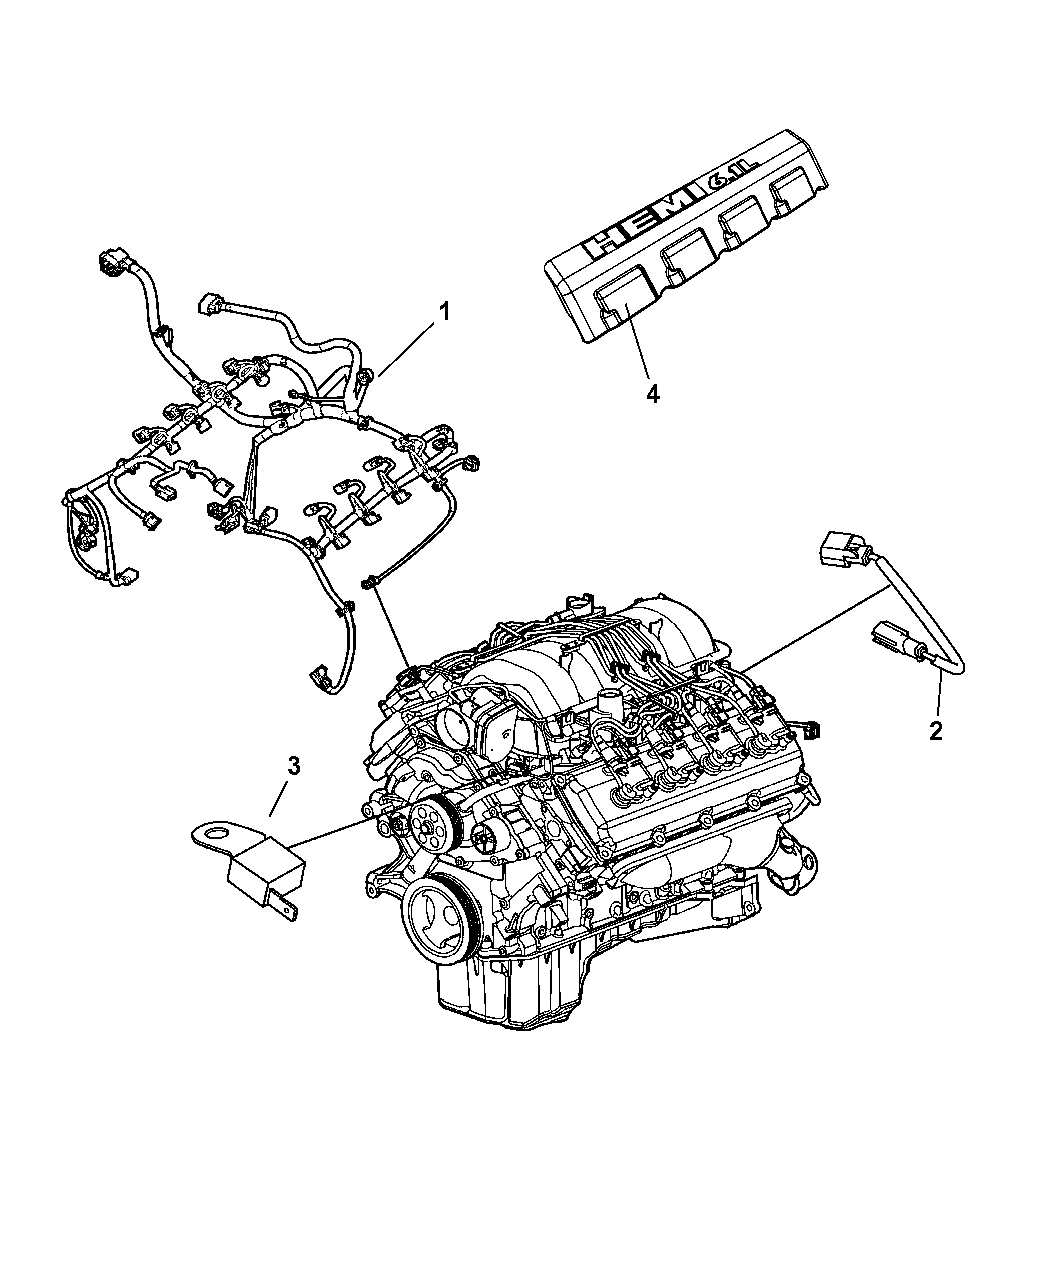 [DIAGRAM_5FD]  Dodge Charger Engine Diagram. dodge oil pan charger magnum 300 2 7l. my  2007 charger won 39 t start the battery died and i had. 2013 dodge charger  wiring engine gas 68159443ac. | 2013 Dodge Charger Engine Diagram |  | 2002-acura-tl-radio.info